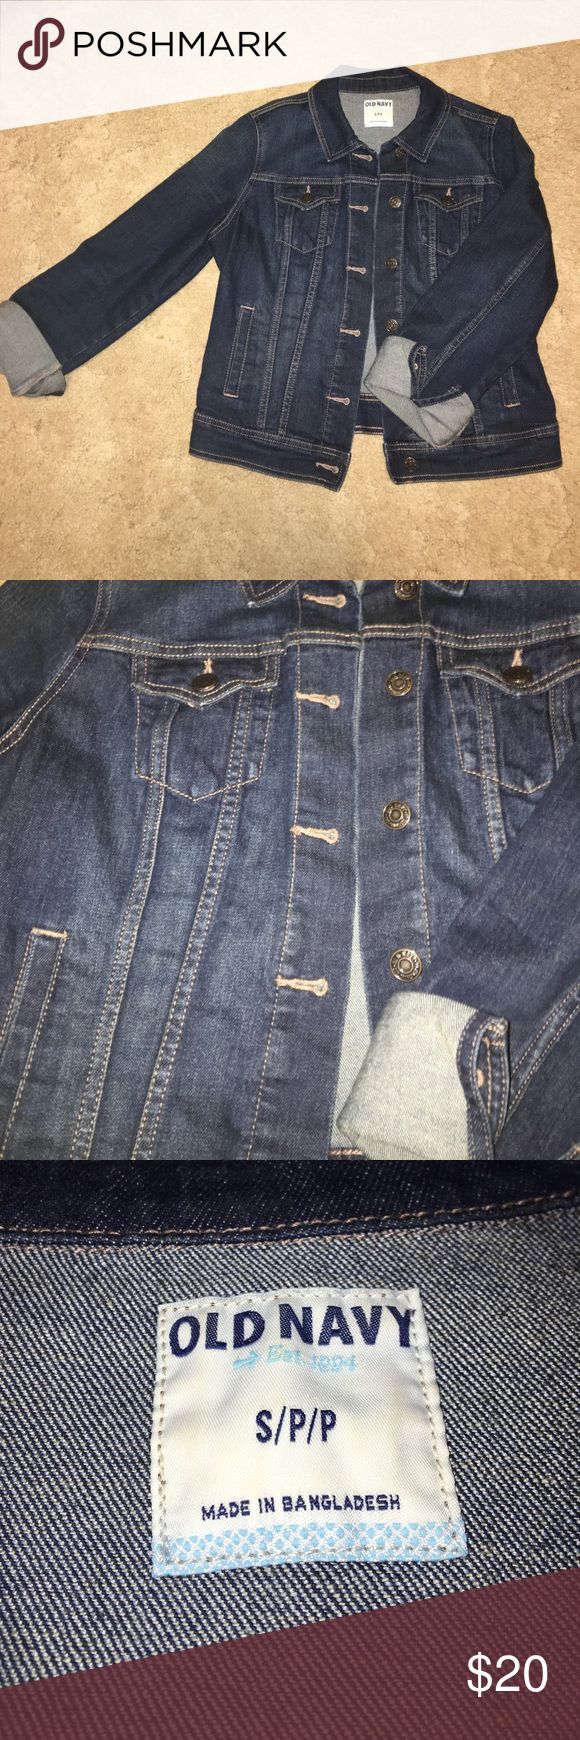 Old Navy Jean Jacket Old Navy Jean Jacket. In like-new condition! Only worn a few times and has been cleaned. Great dark blue denim and is a cropped fit. Perfect all year round! Old Navy Jackets & Coats Jean Jackets